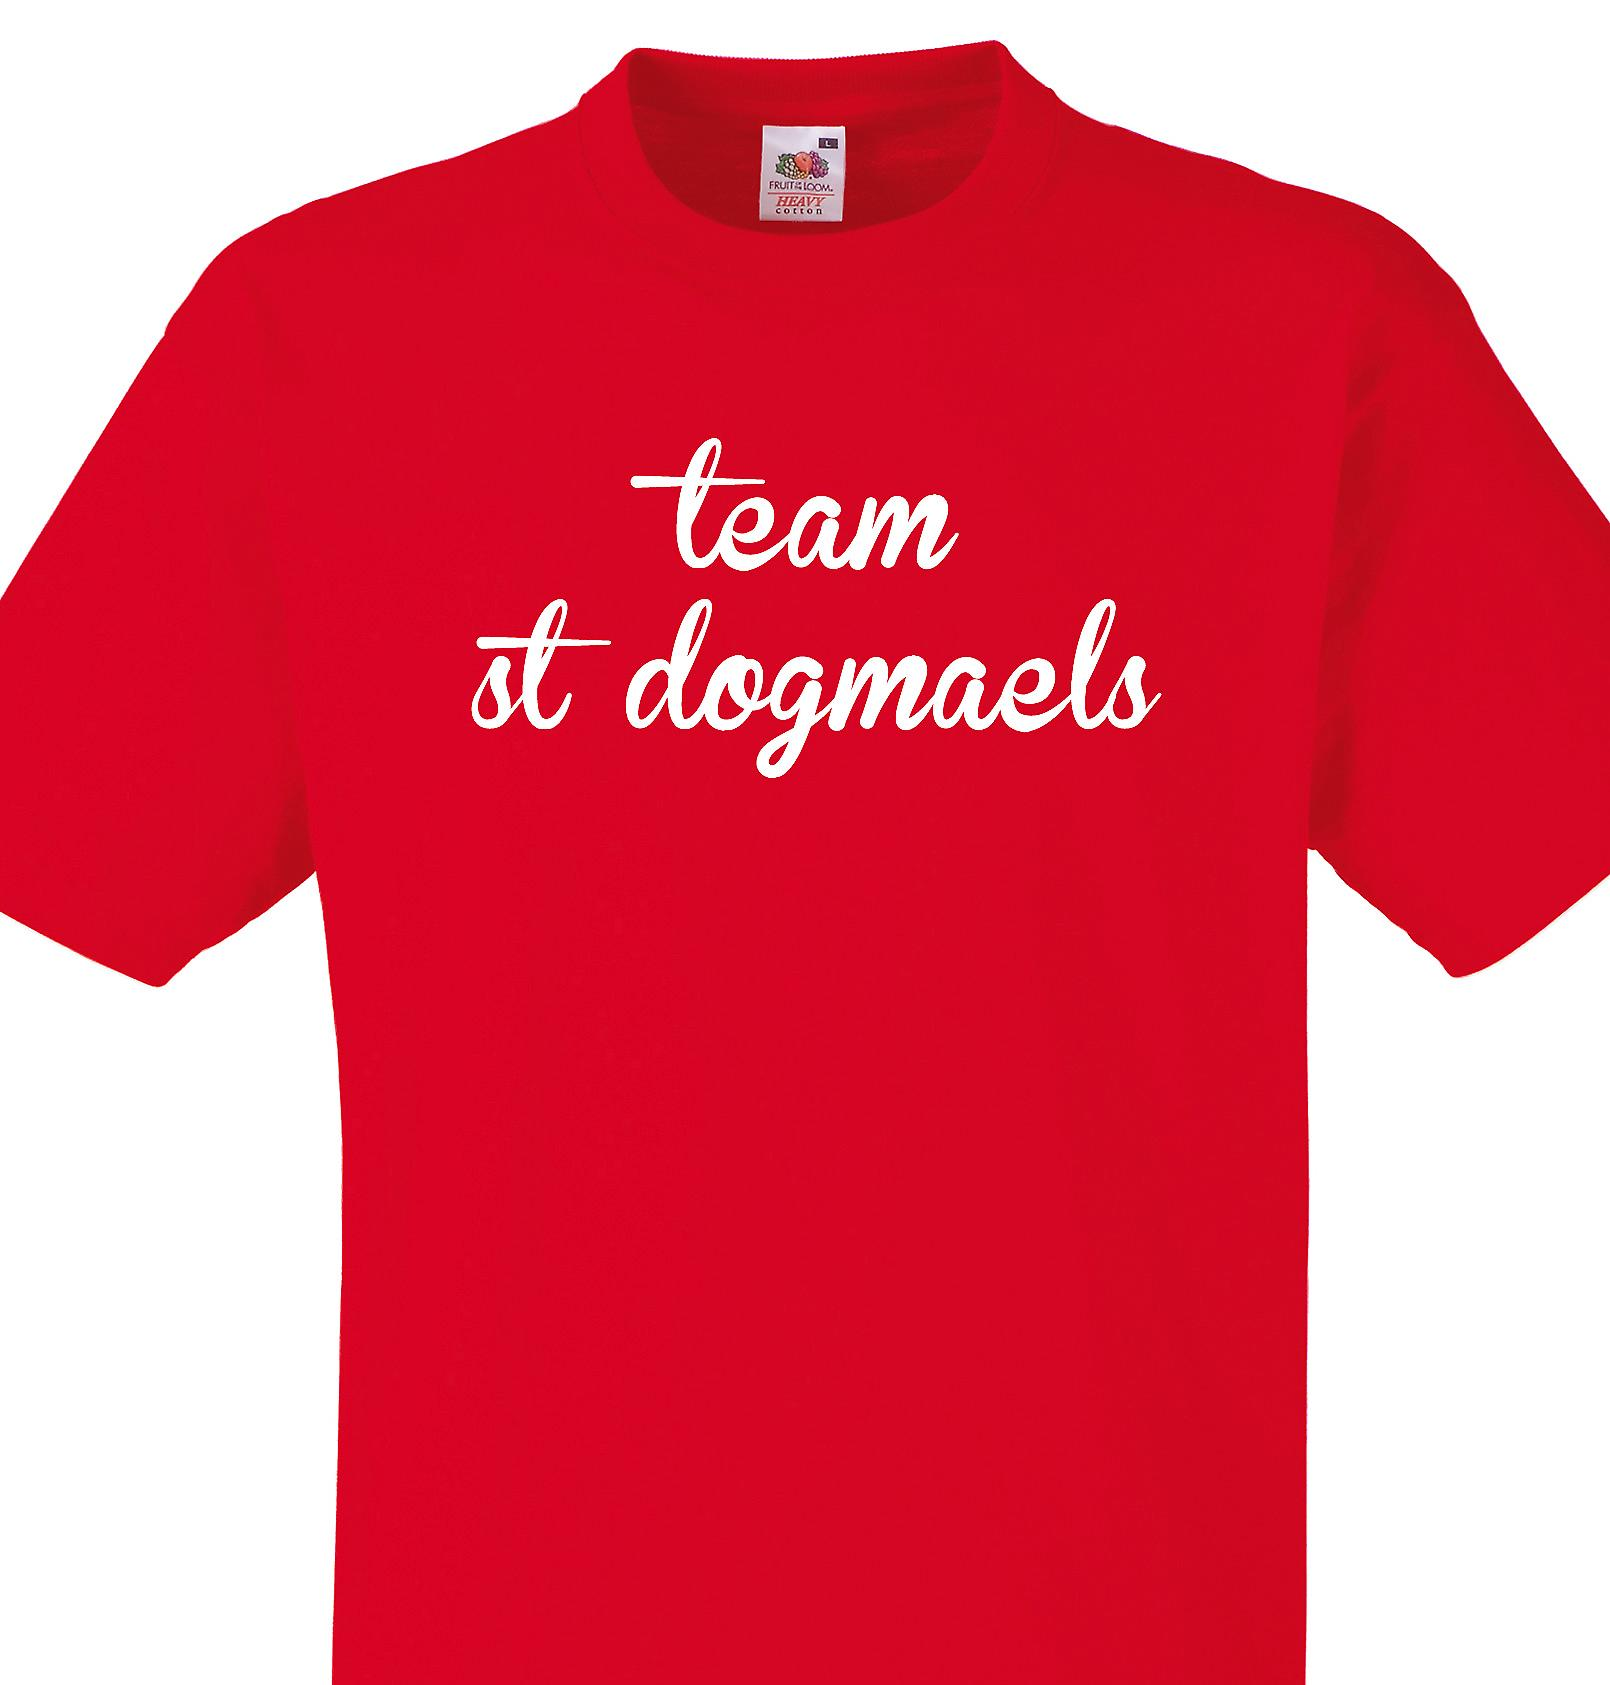 Team St dogmaels Red T shirt